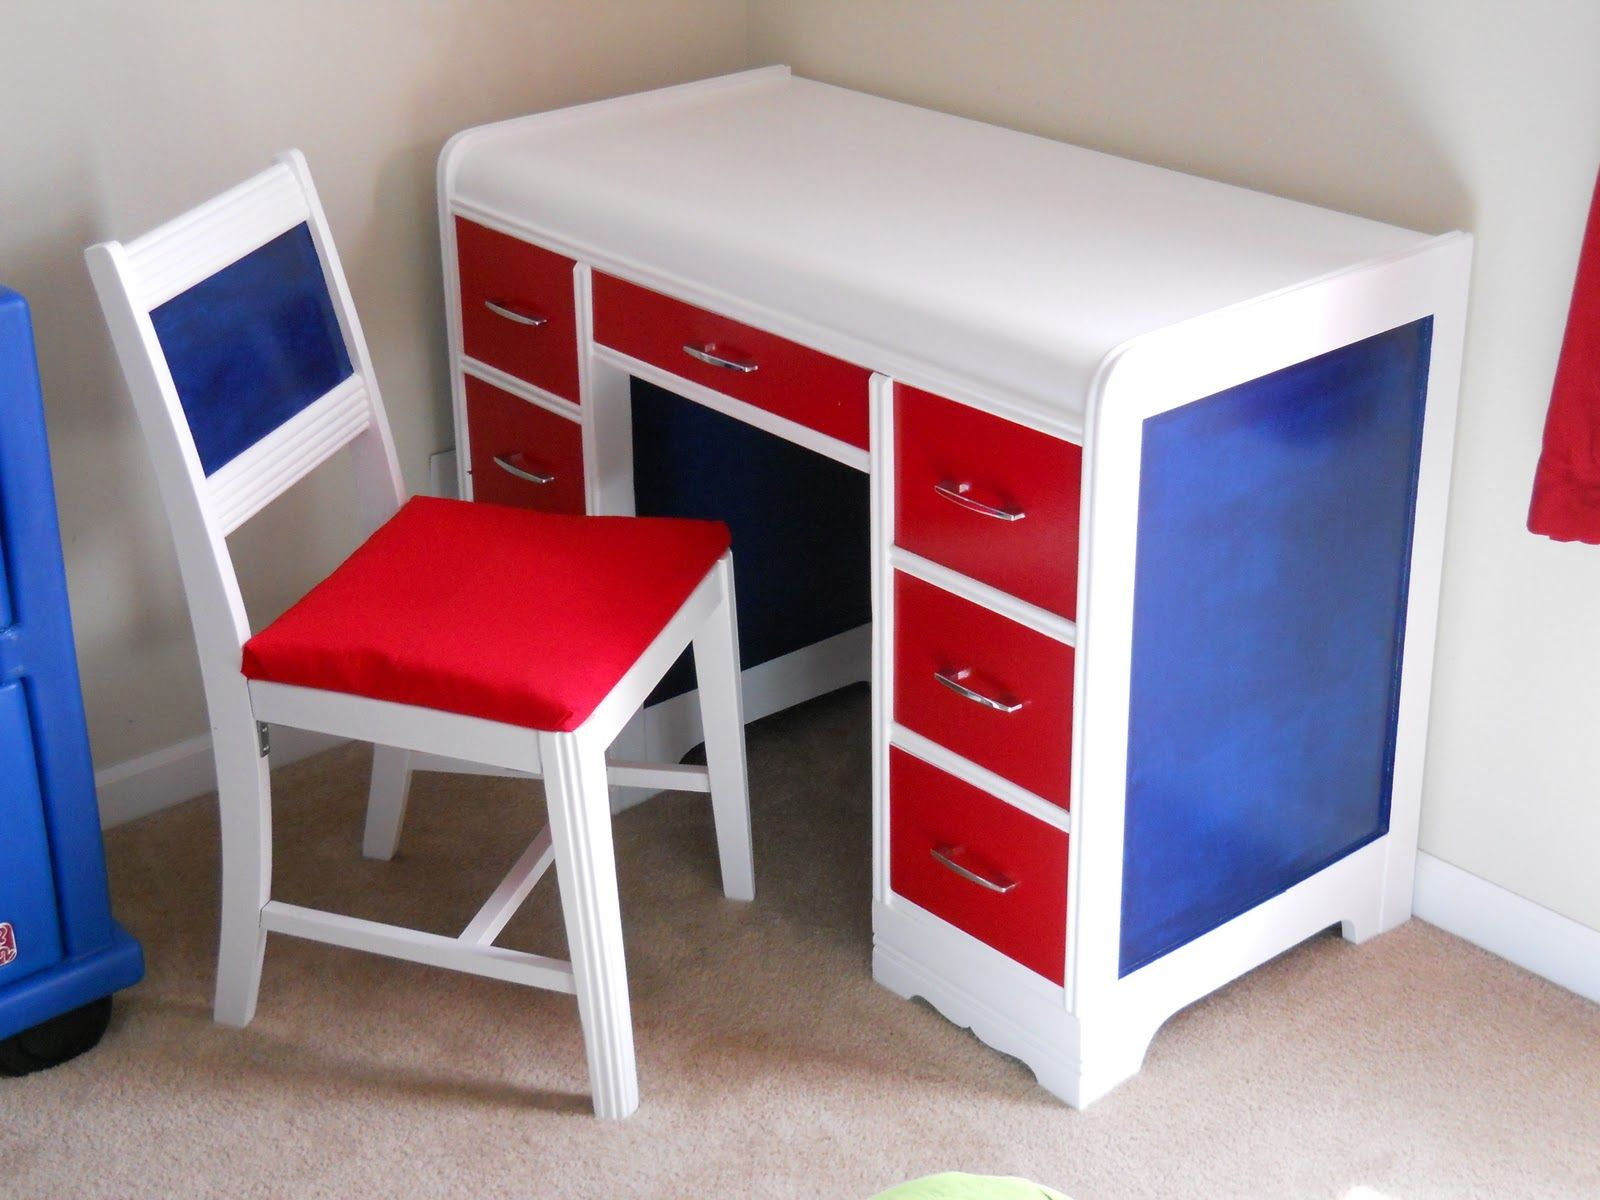 Kids Desk Accessories And Art Deco Wooden Study Table With Red Drawers And White Top Combined With Whit Childrens Desk And Chair Kids Desk Chair Kids Room Desk